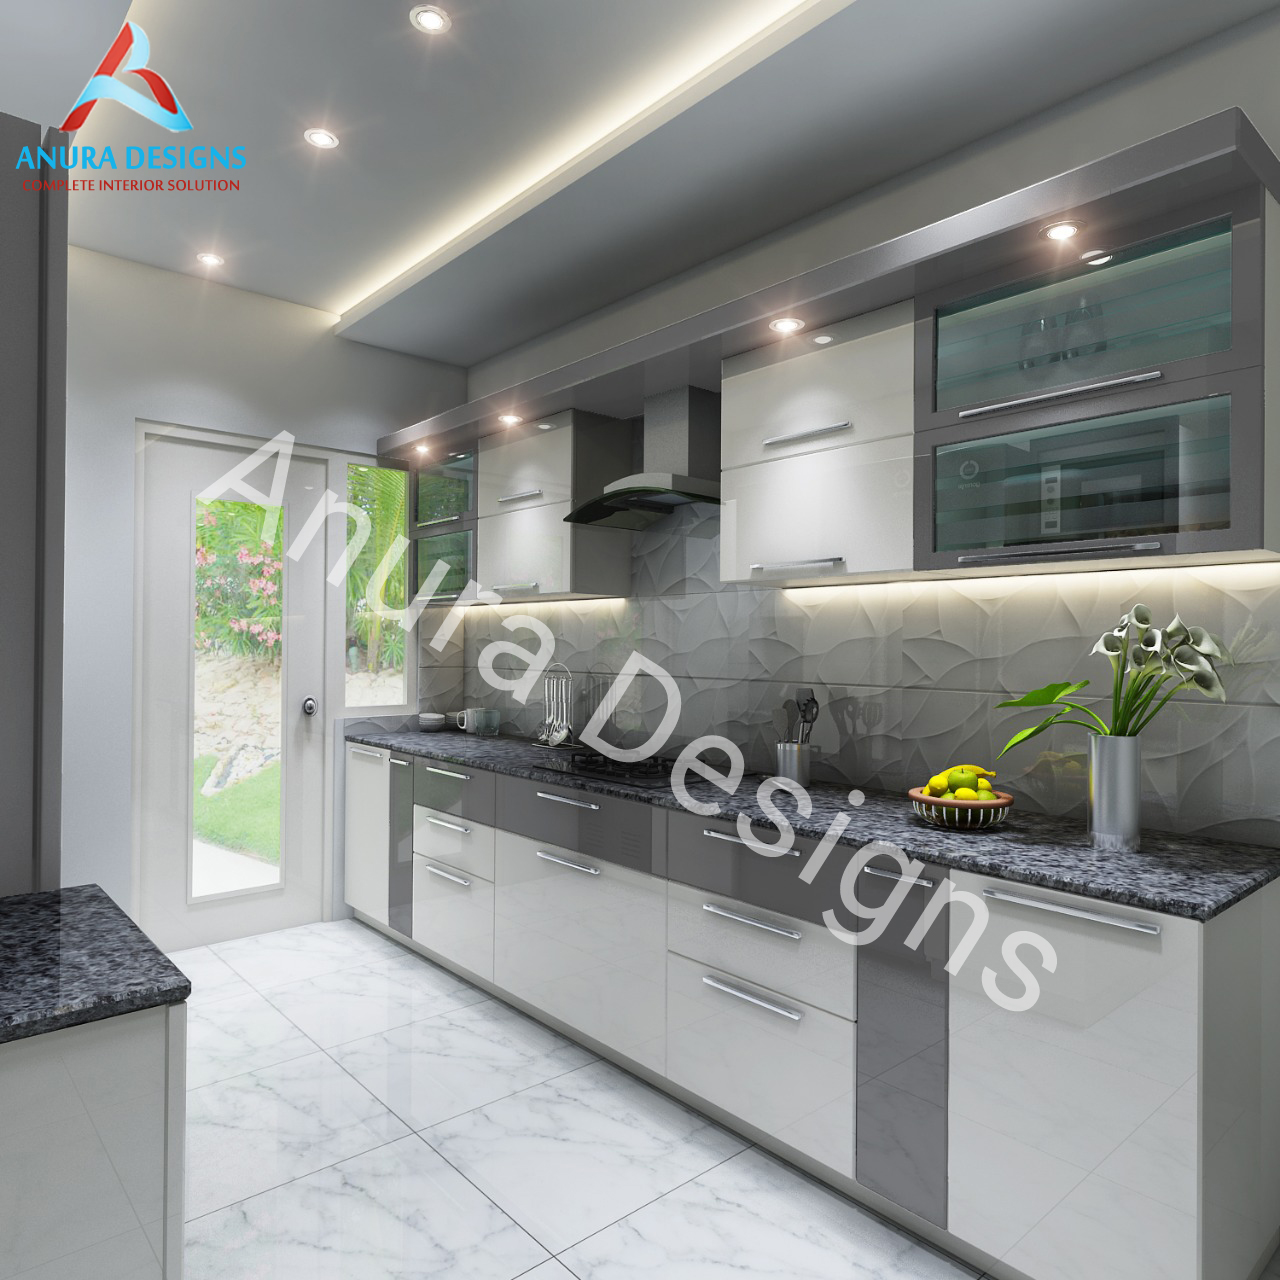 Kitchen Interior Designer in Baljit Nagar